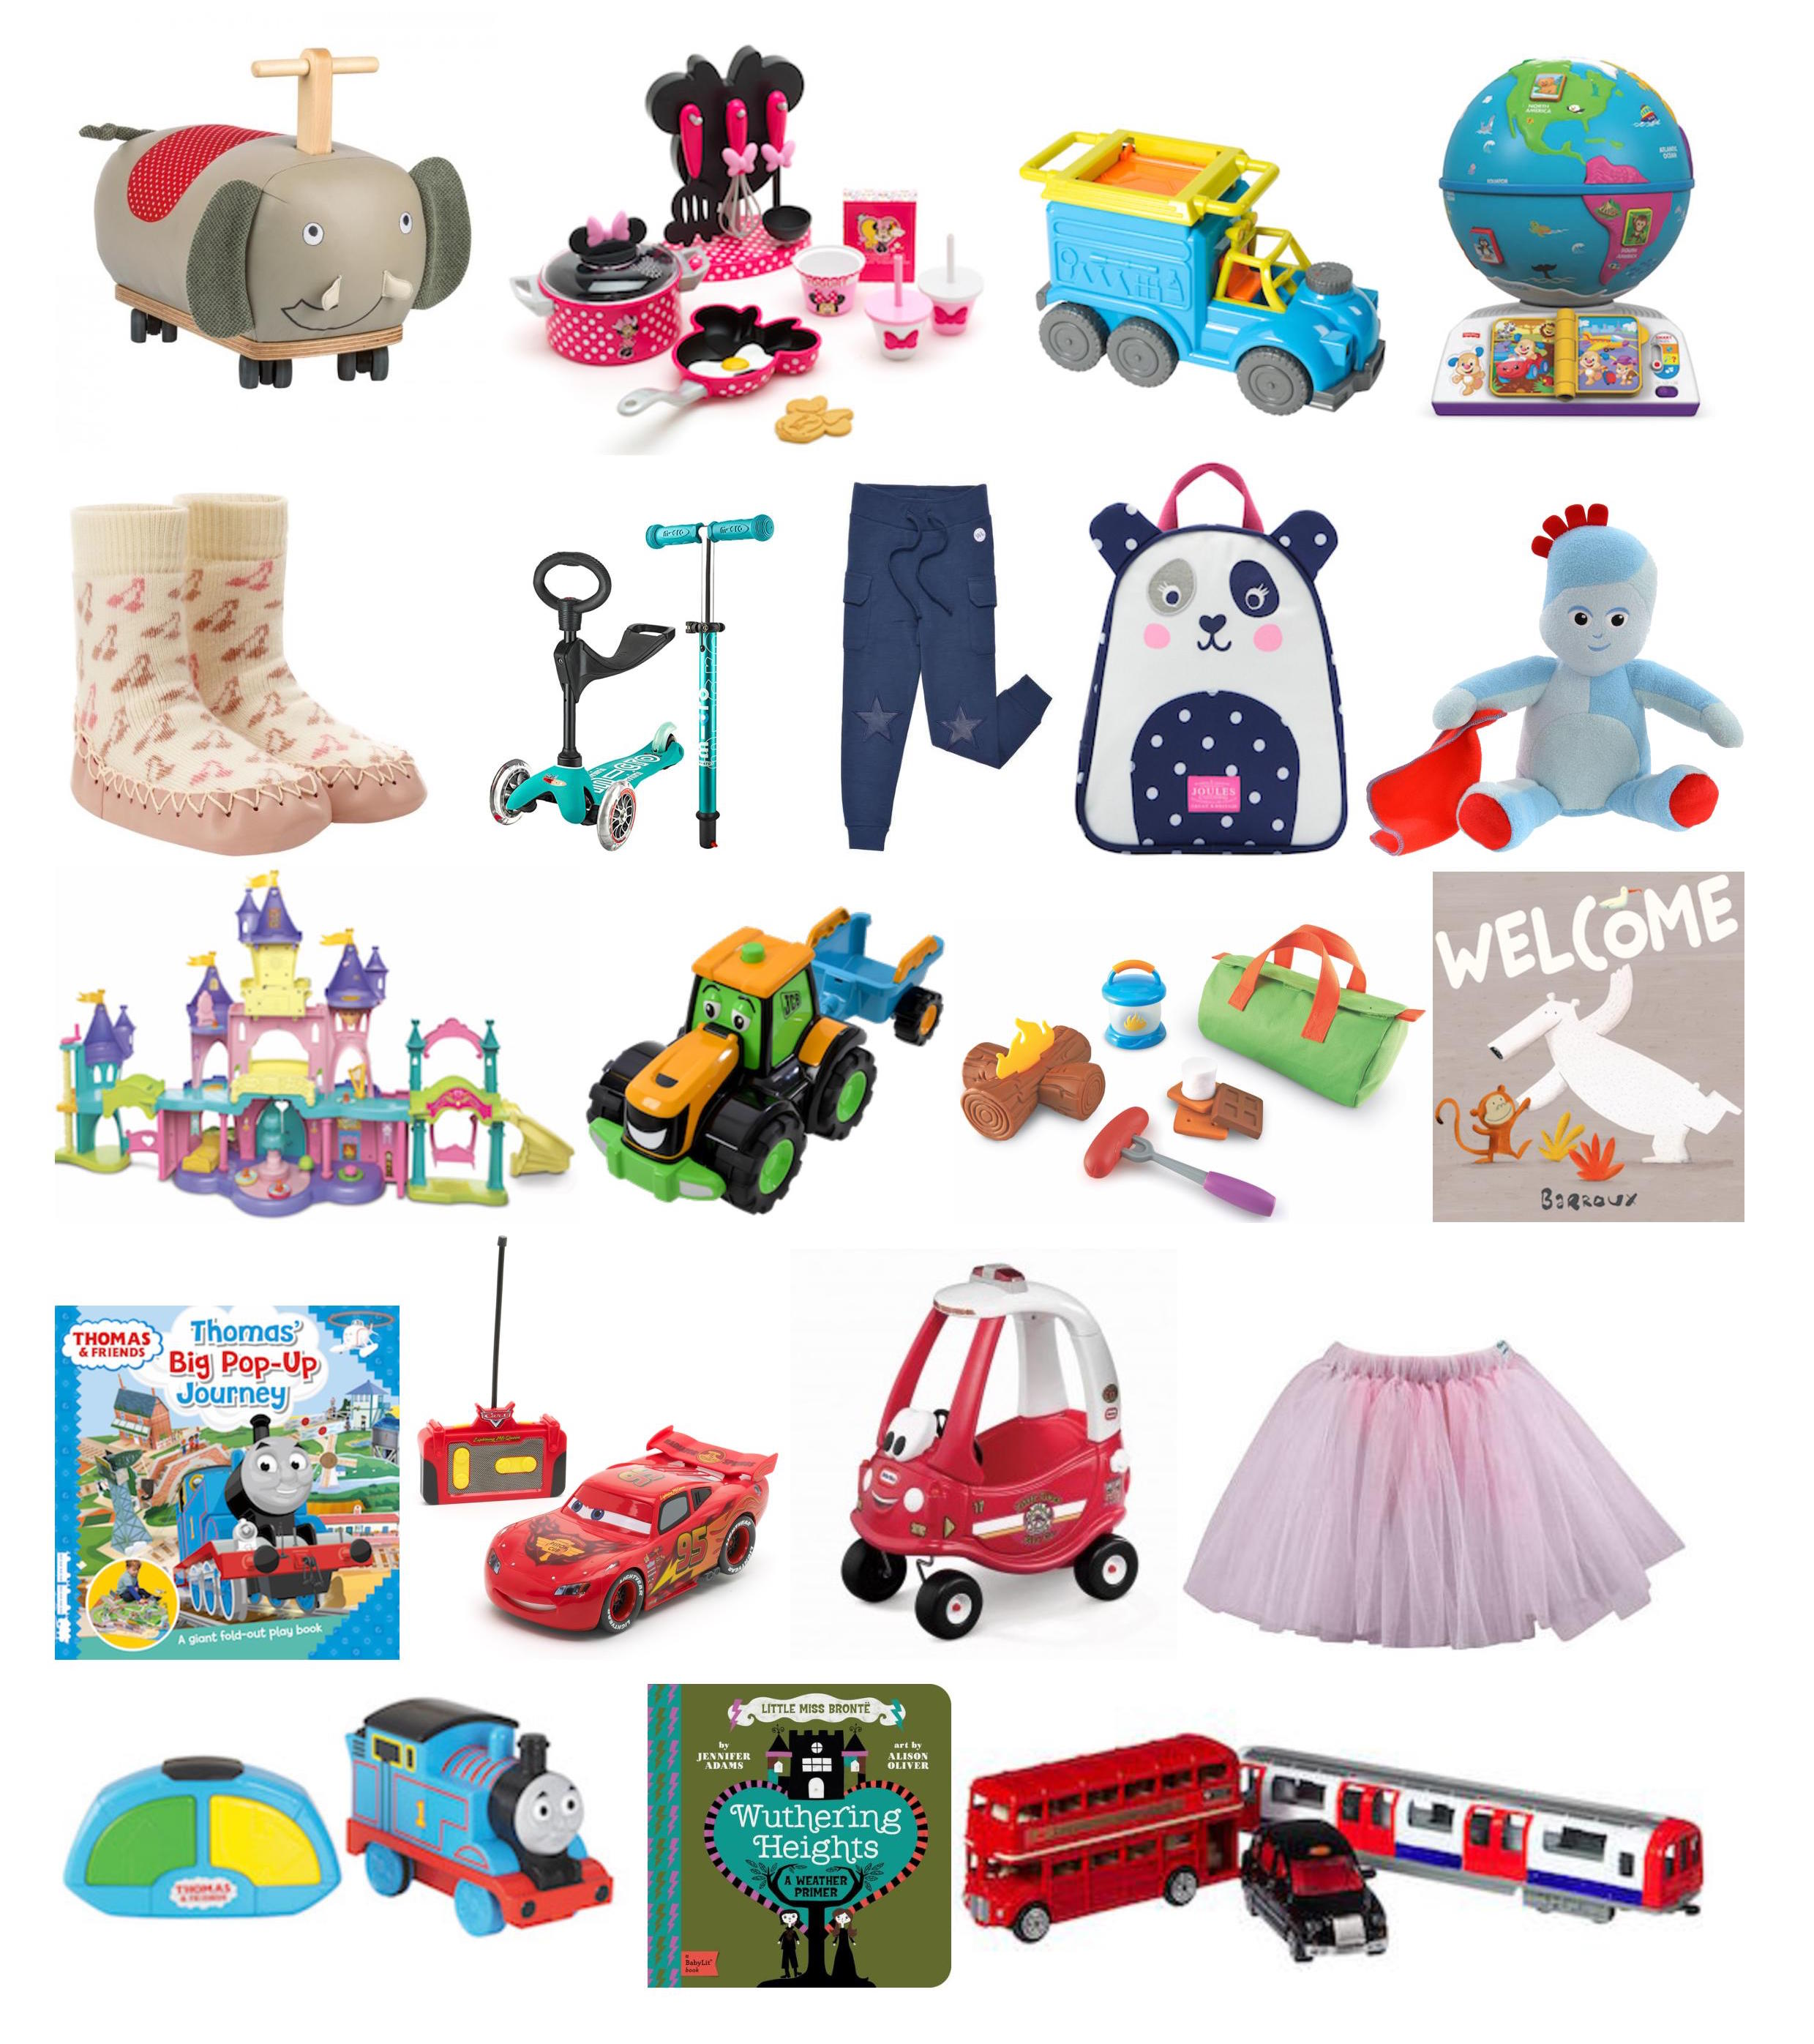 christmas-gifts-preschoolers-page-001-2